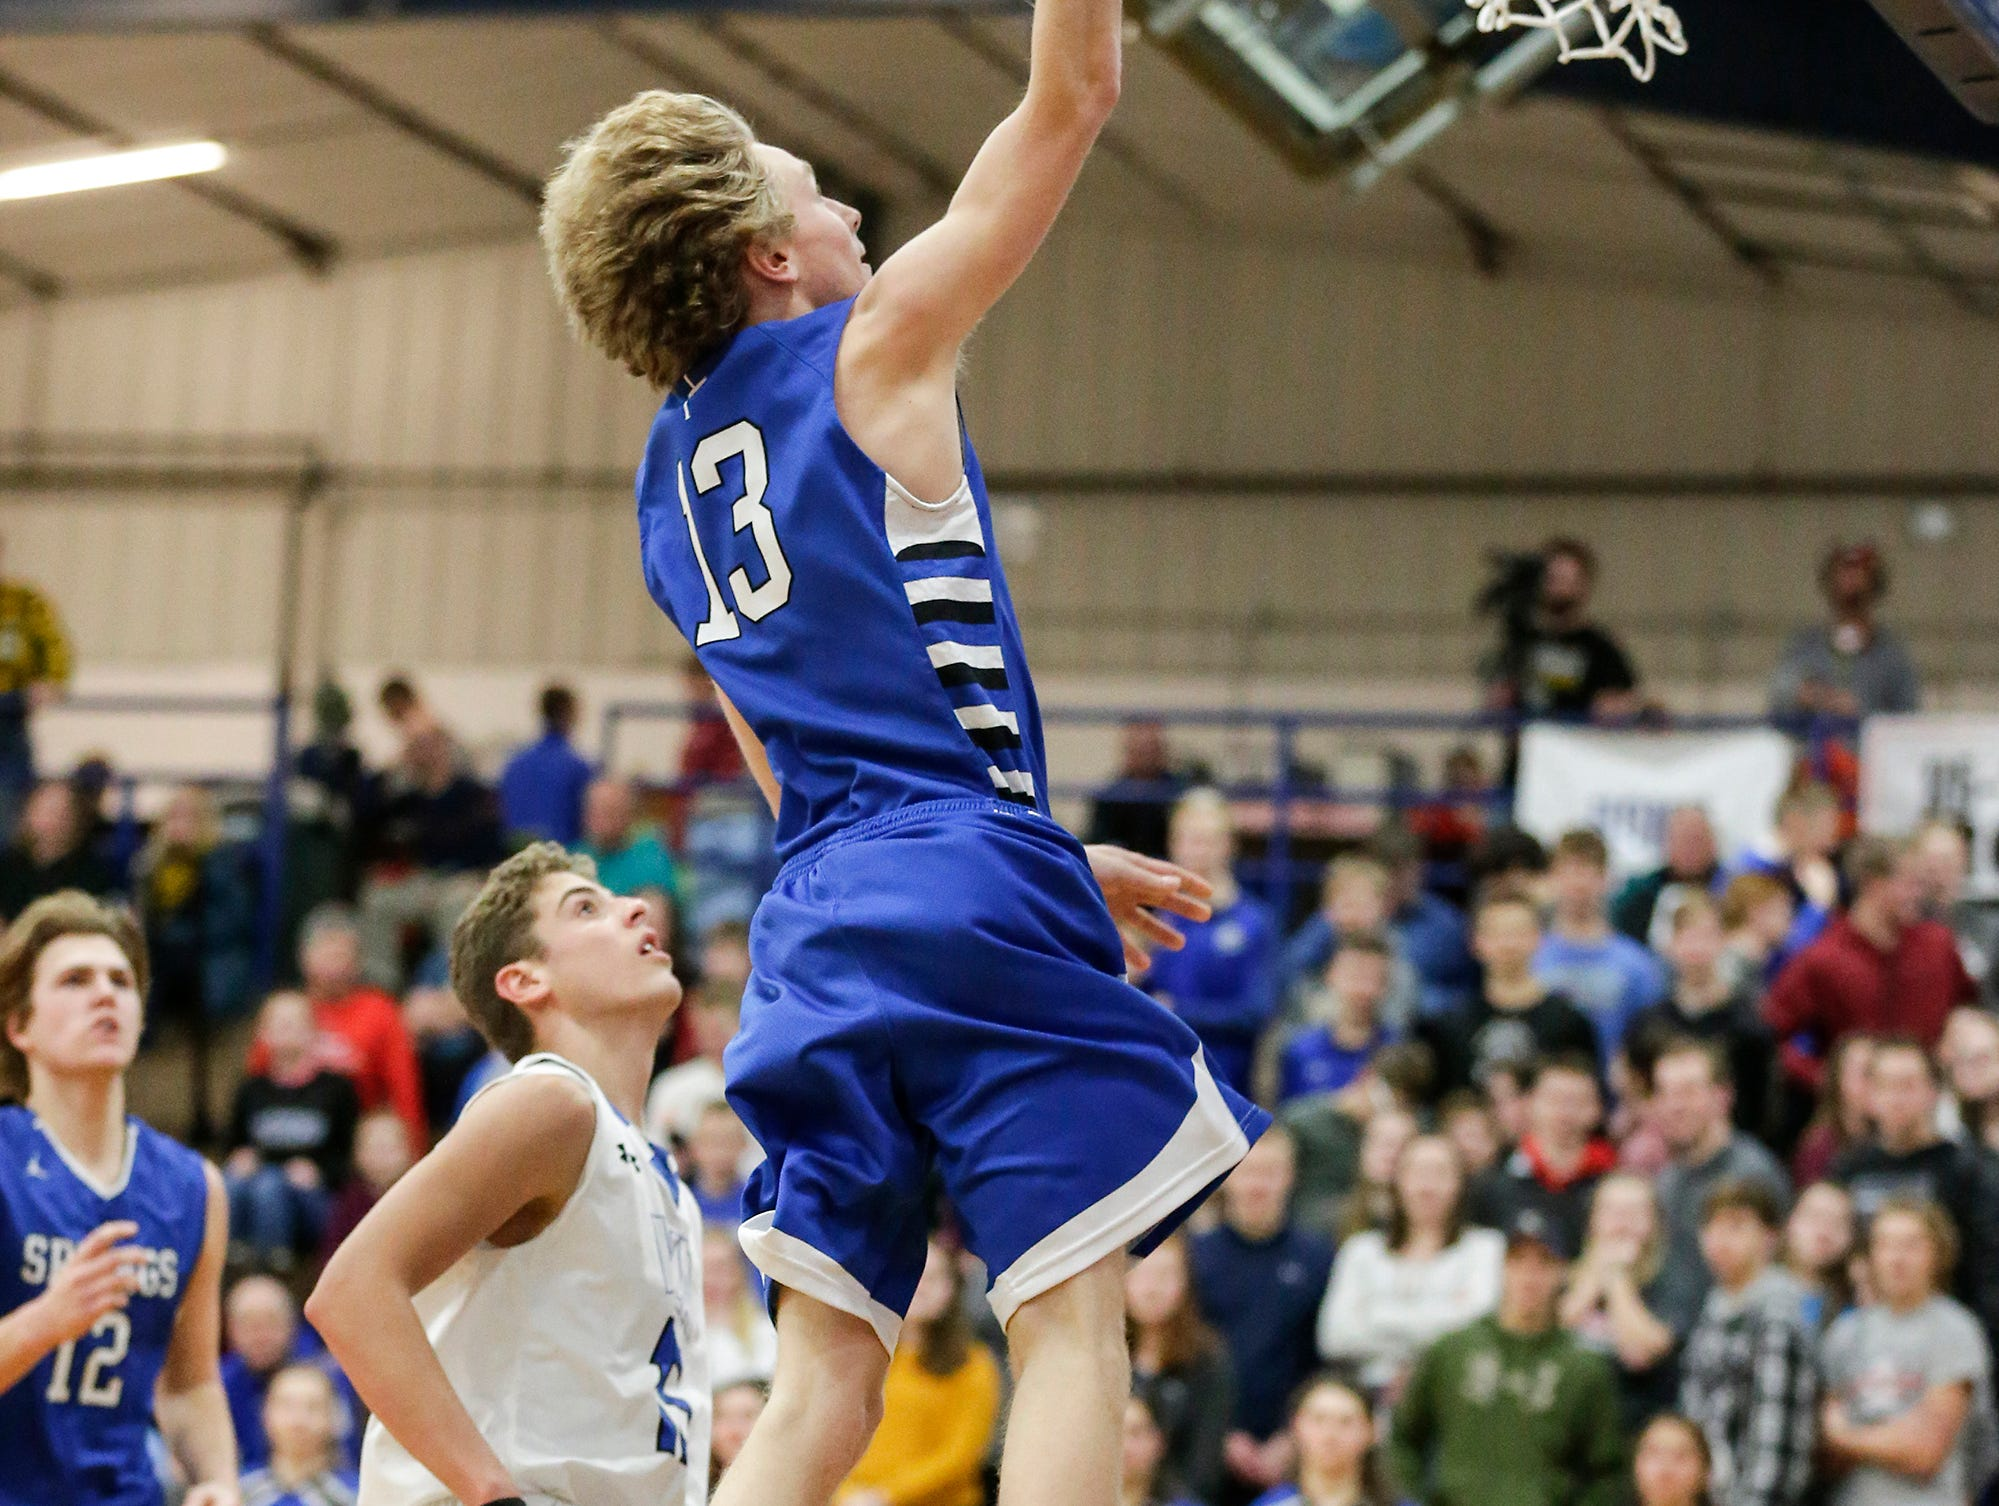 St. Mary's Spring Academy boys basketball's Myles Ottery makes this shot against Winnebago Lutheran Academy Tuesday, January 8, 2019 during their game in Fond du Lac. Winnebago Lutheran Academy won the game 69-66. Doug Raflik/USA TODAY NETWORK-Wisconsin